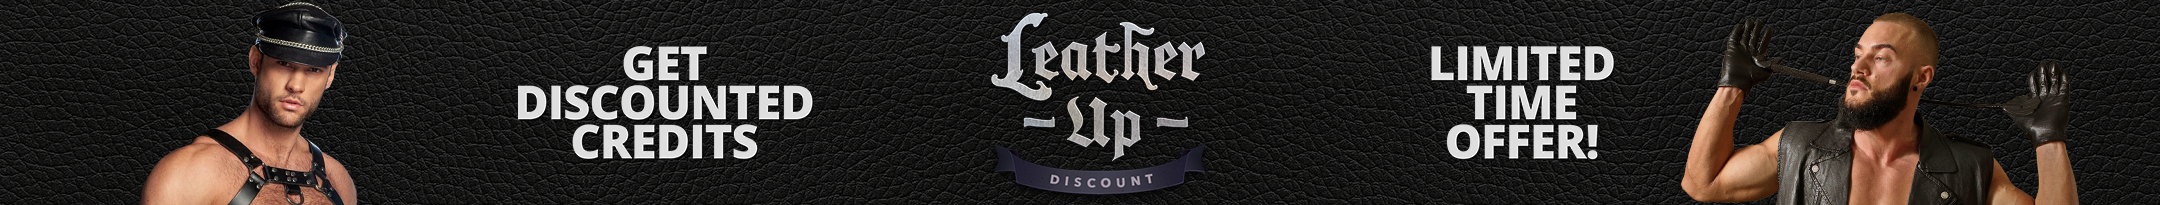 Leather Up Discount Promo